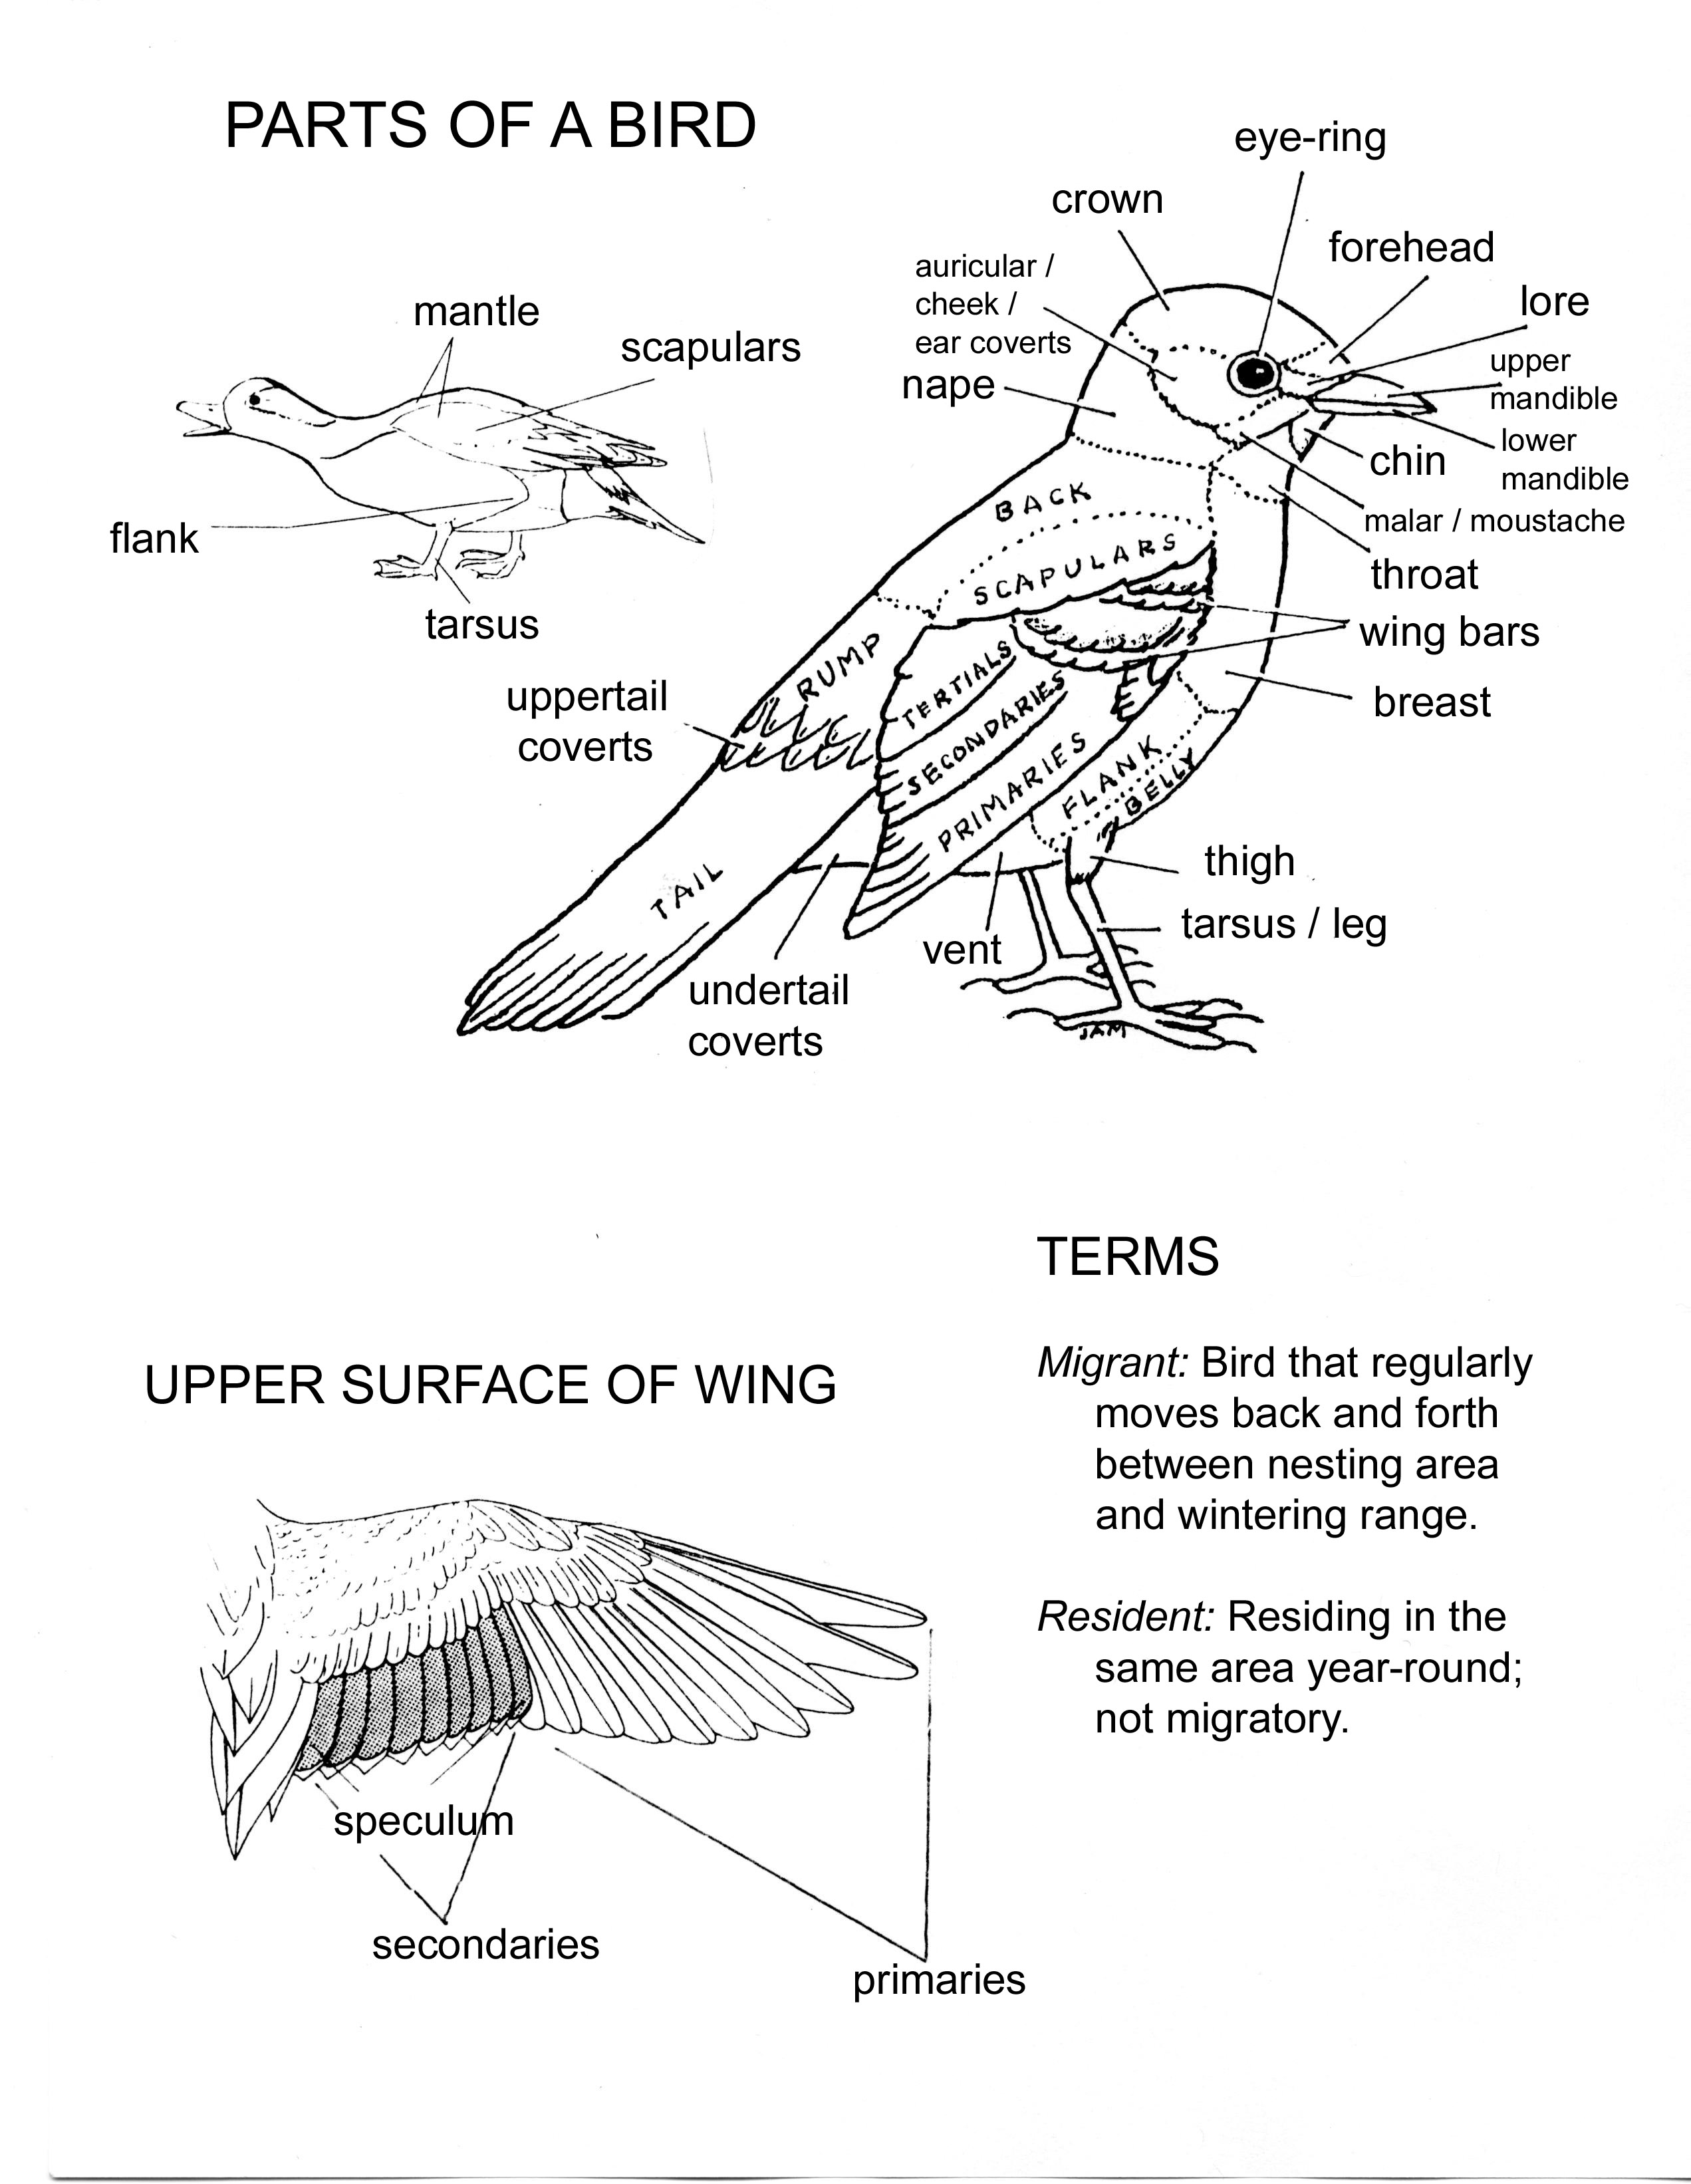 Worksheet For The Area Of Science About Birds Parts Of The Body Images